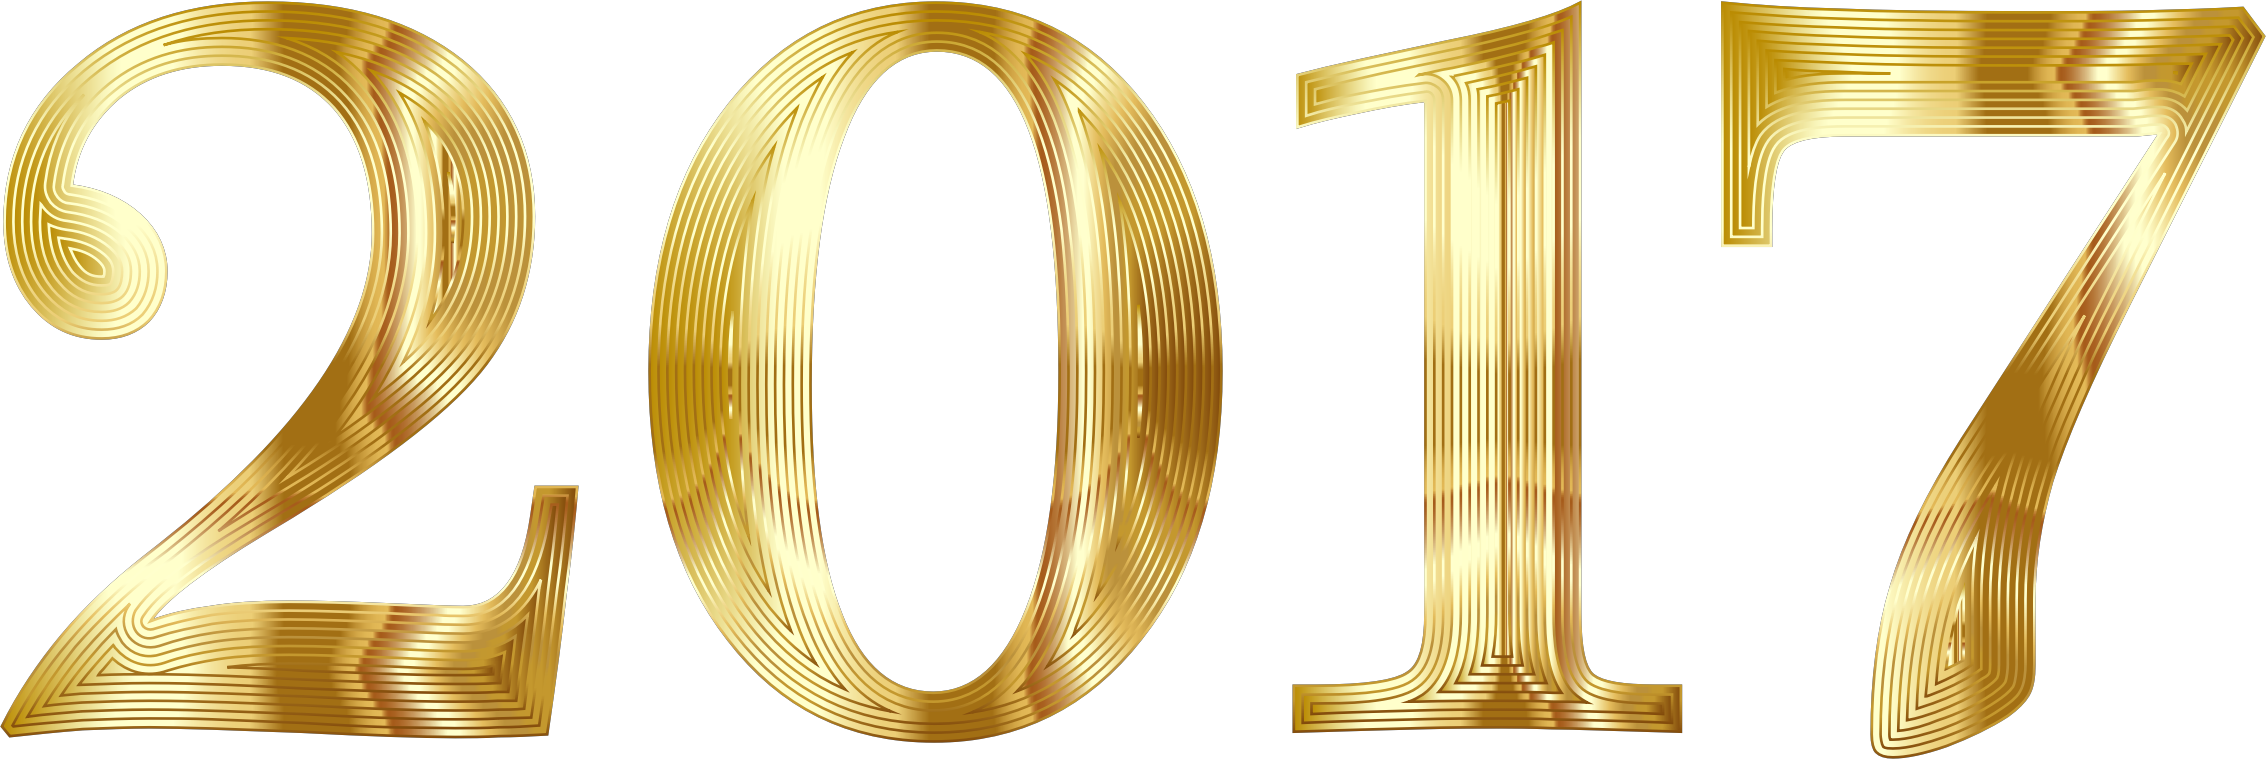 2017 clipart clear background. Gold typography no big